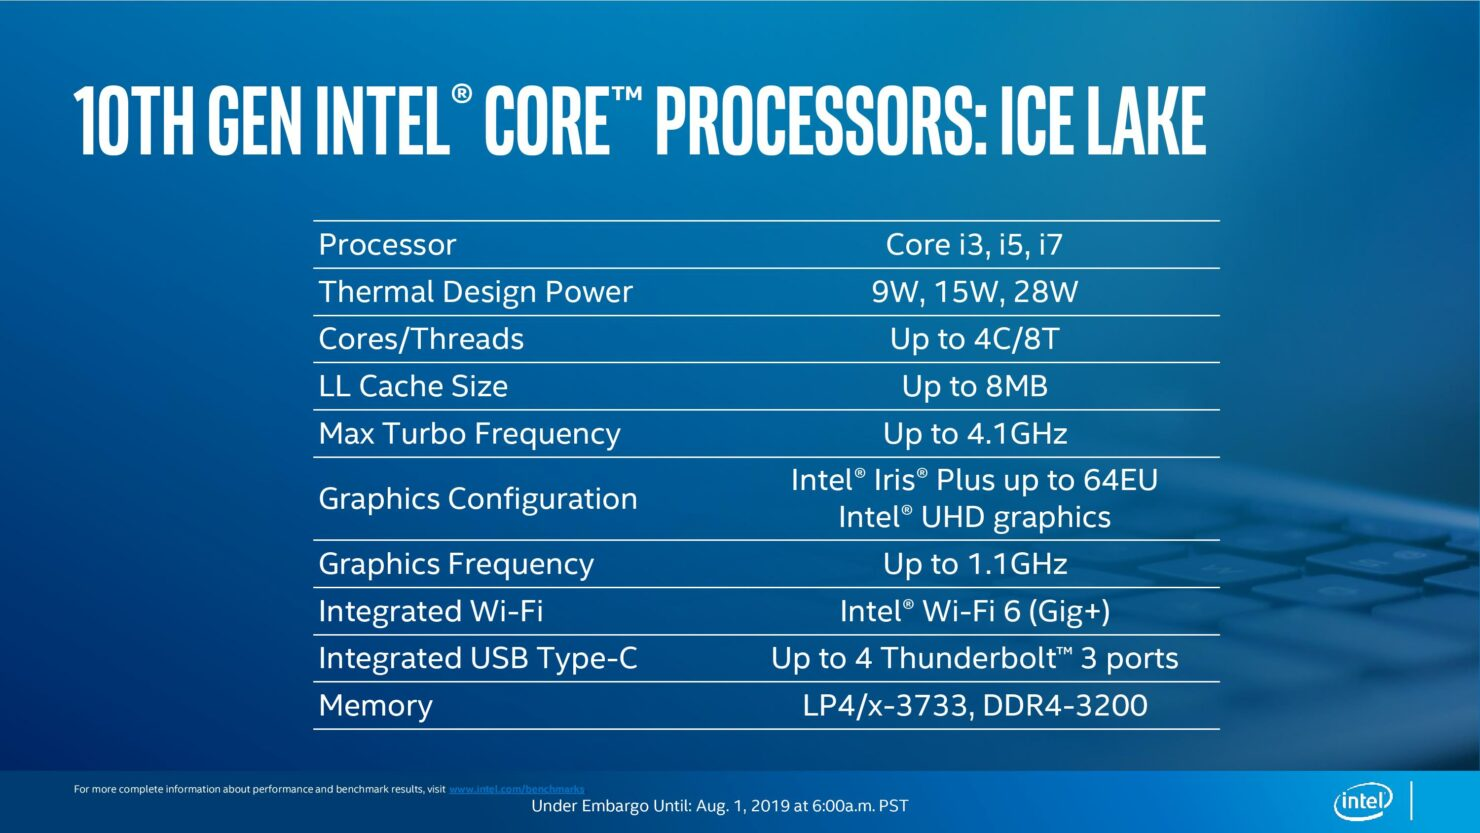 10th-gen-intel-core-processors_ice-lake-launch_under-embargo-until-aug-1-at-600am-pst111-page-008